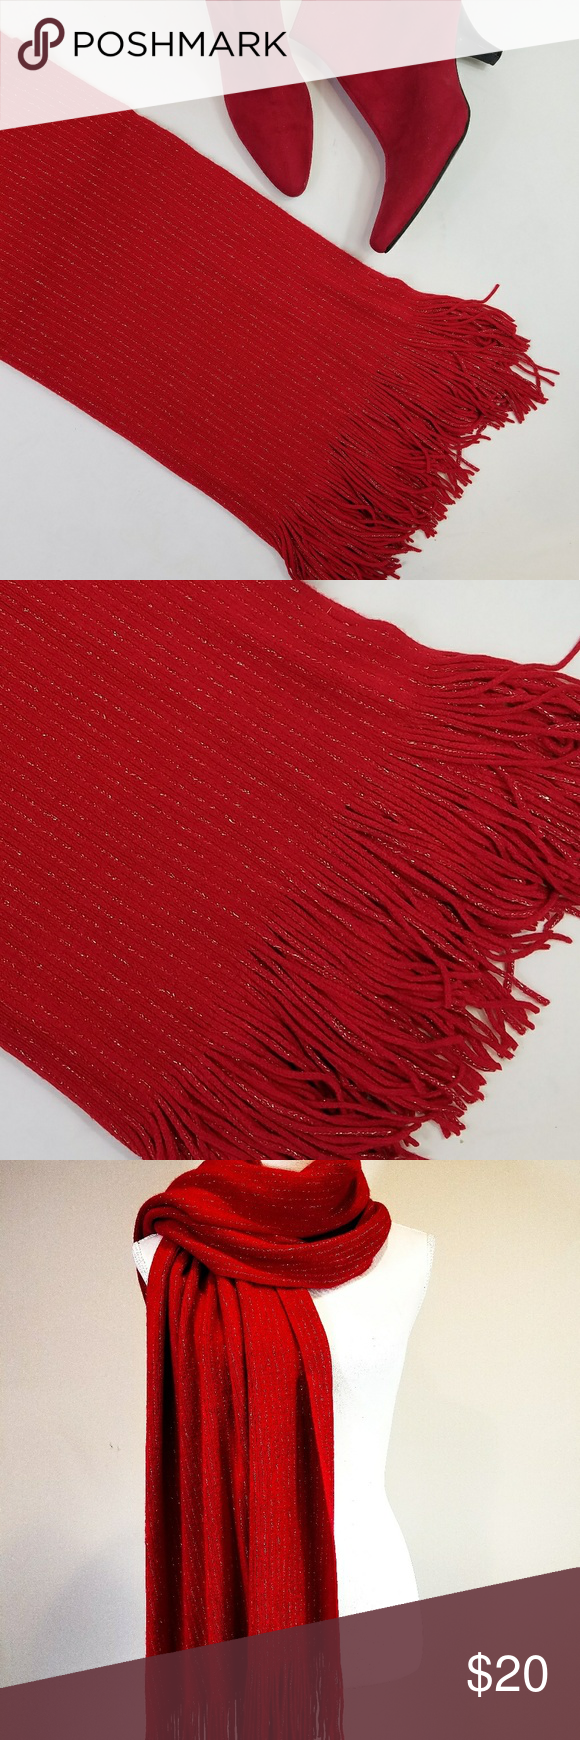 Pinstriped Scarf Clothes Design Red Scarves Fashion Design